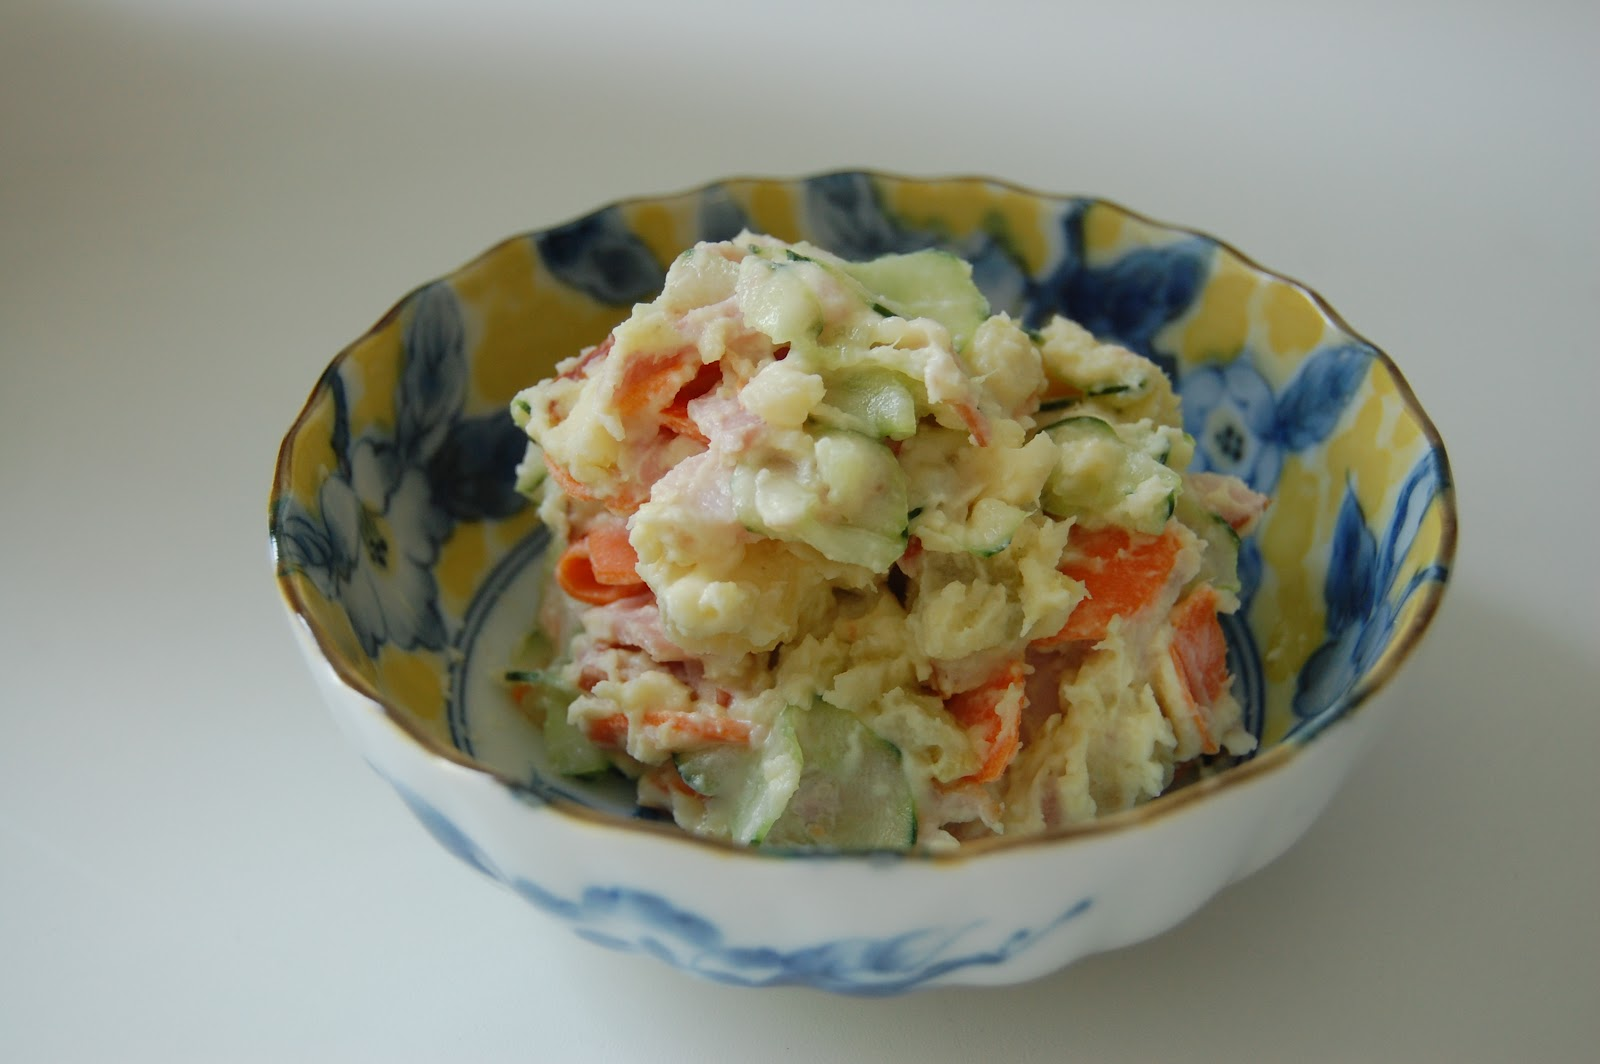 Japanese Sweet Potato Salad 薩摩いもサラダ | Japanese Cuisine - Cooking Japanese Food at Home